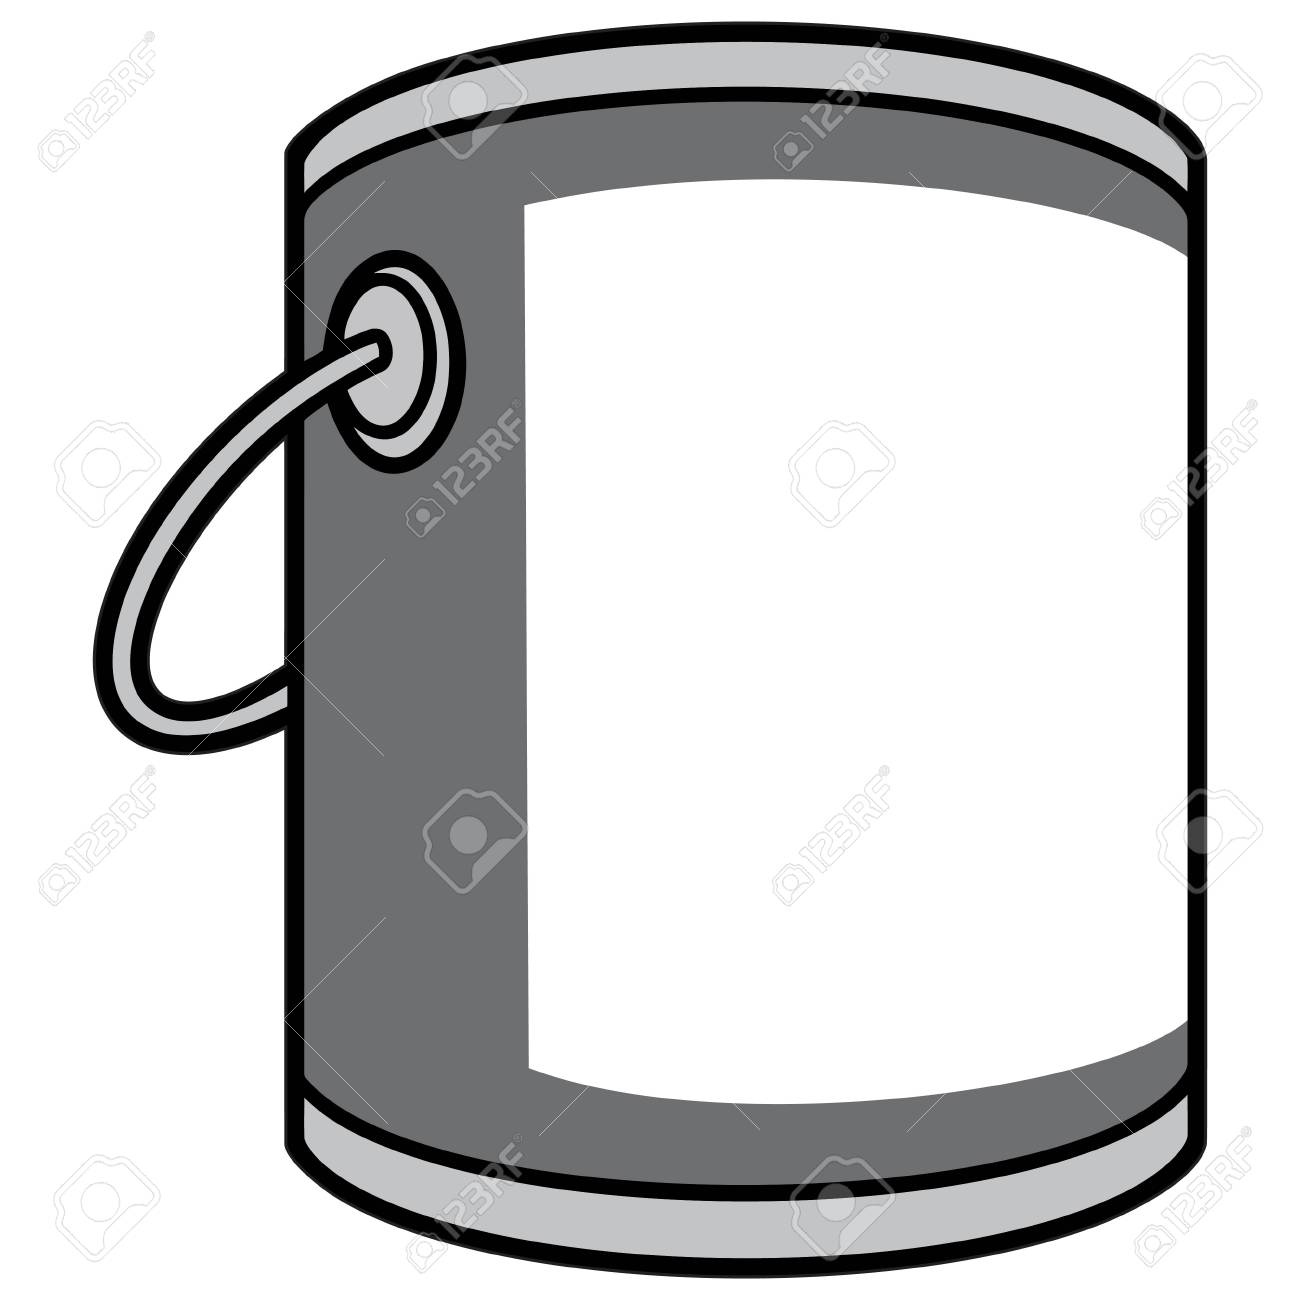 Paint Bucket Illustration Royalty Free Cliparts Vectors And Stock Illustration Image 88254139